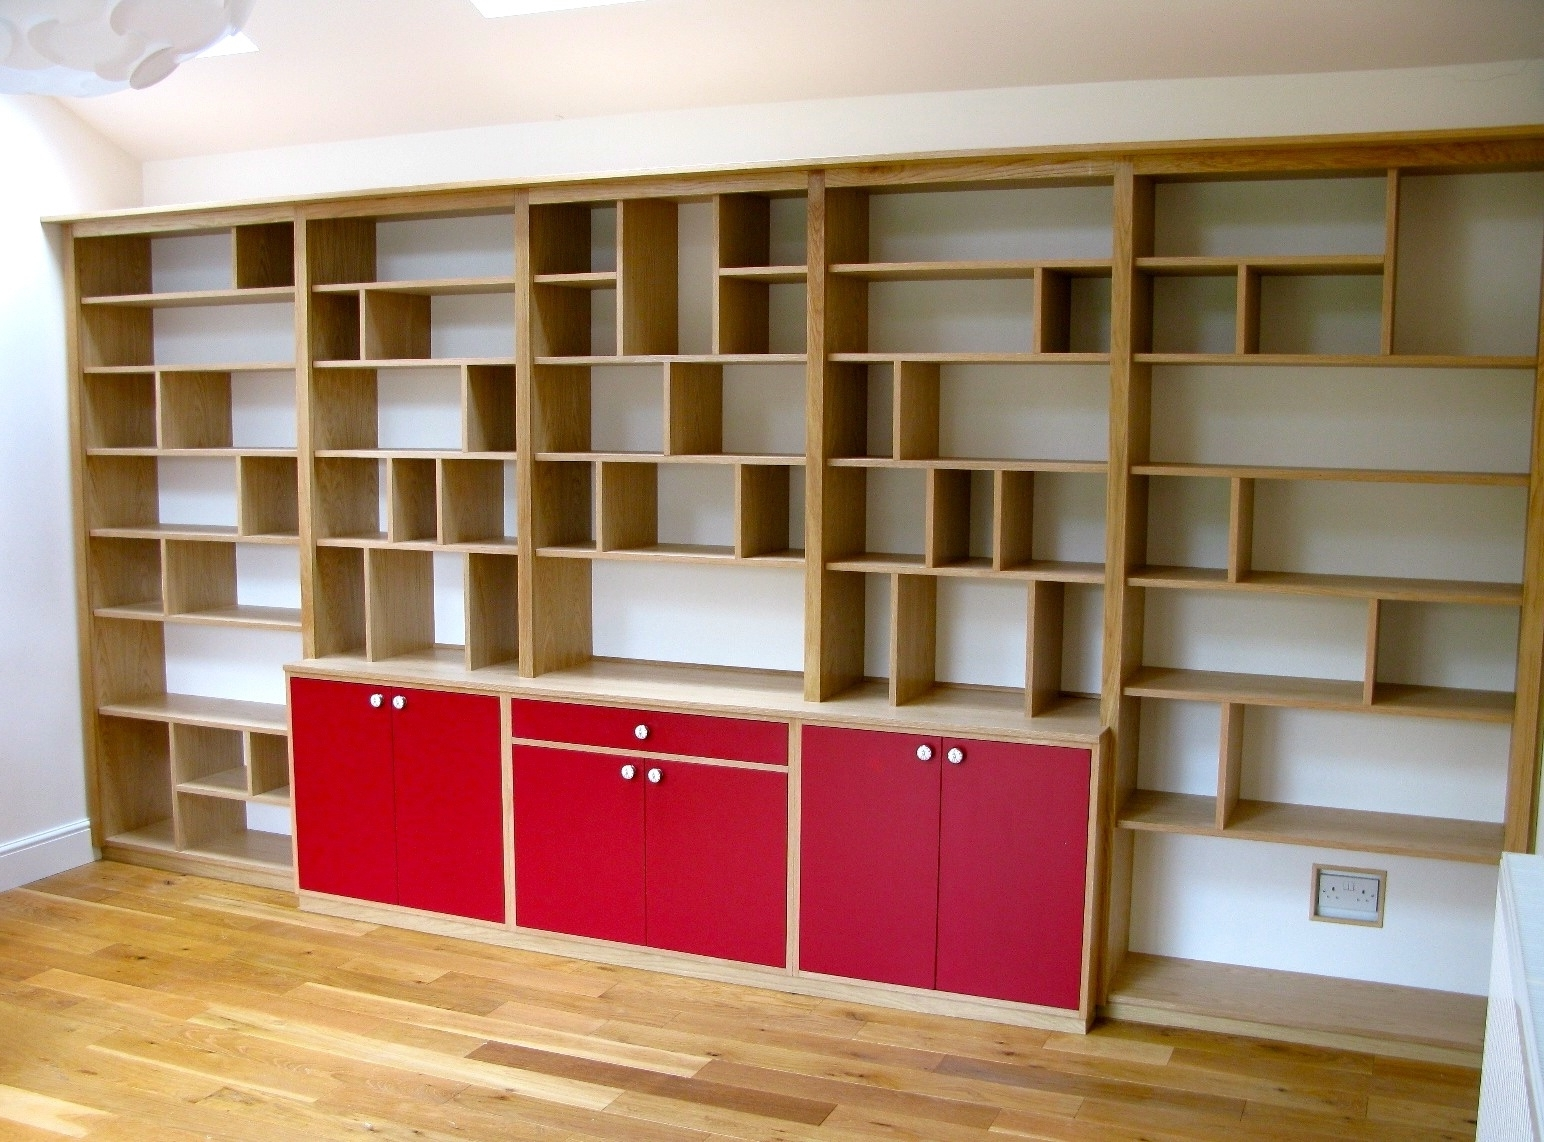 Bespoke Shelving Units With Most Recently Released Bookshelves & Libraries (View 2 of 15)